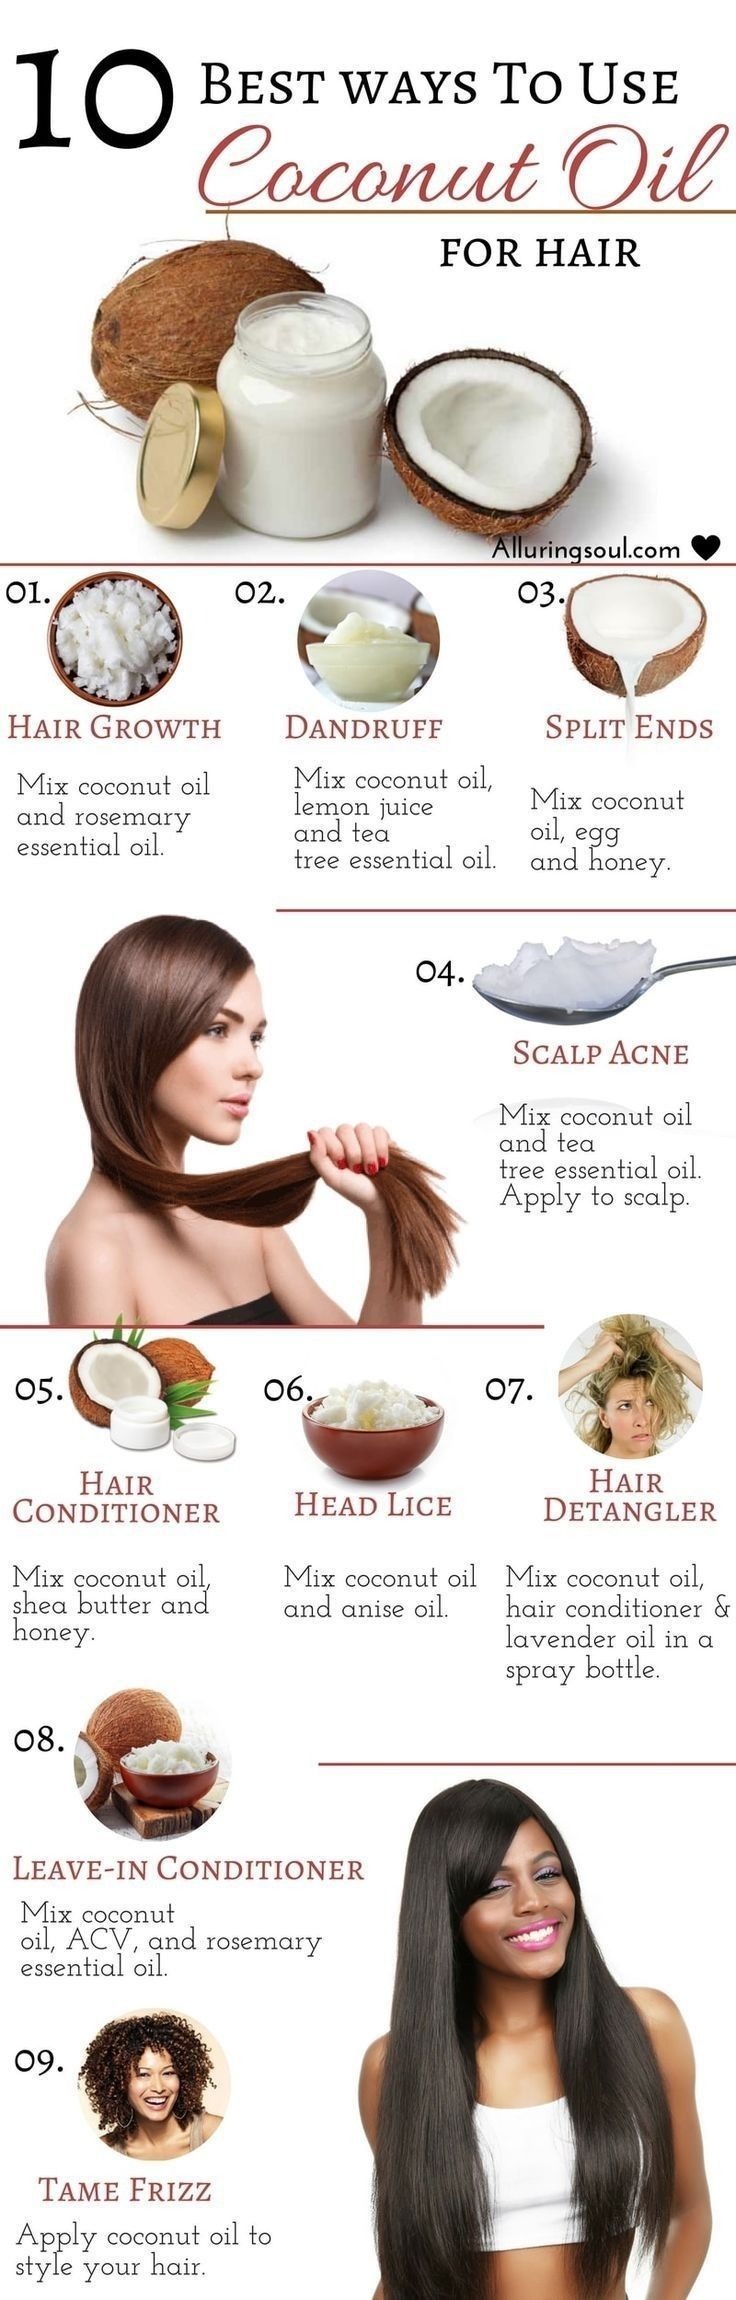 coconut oil to style hair 25 best ideas about professional hairstyles on 8606 | eeda044dafeadfd0d1002e0ad78fde95